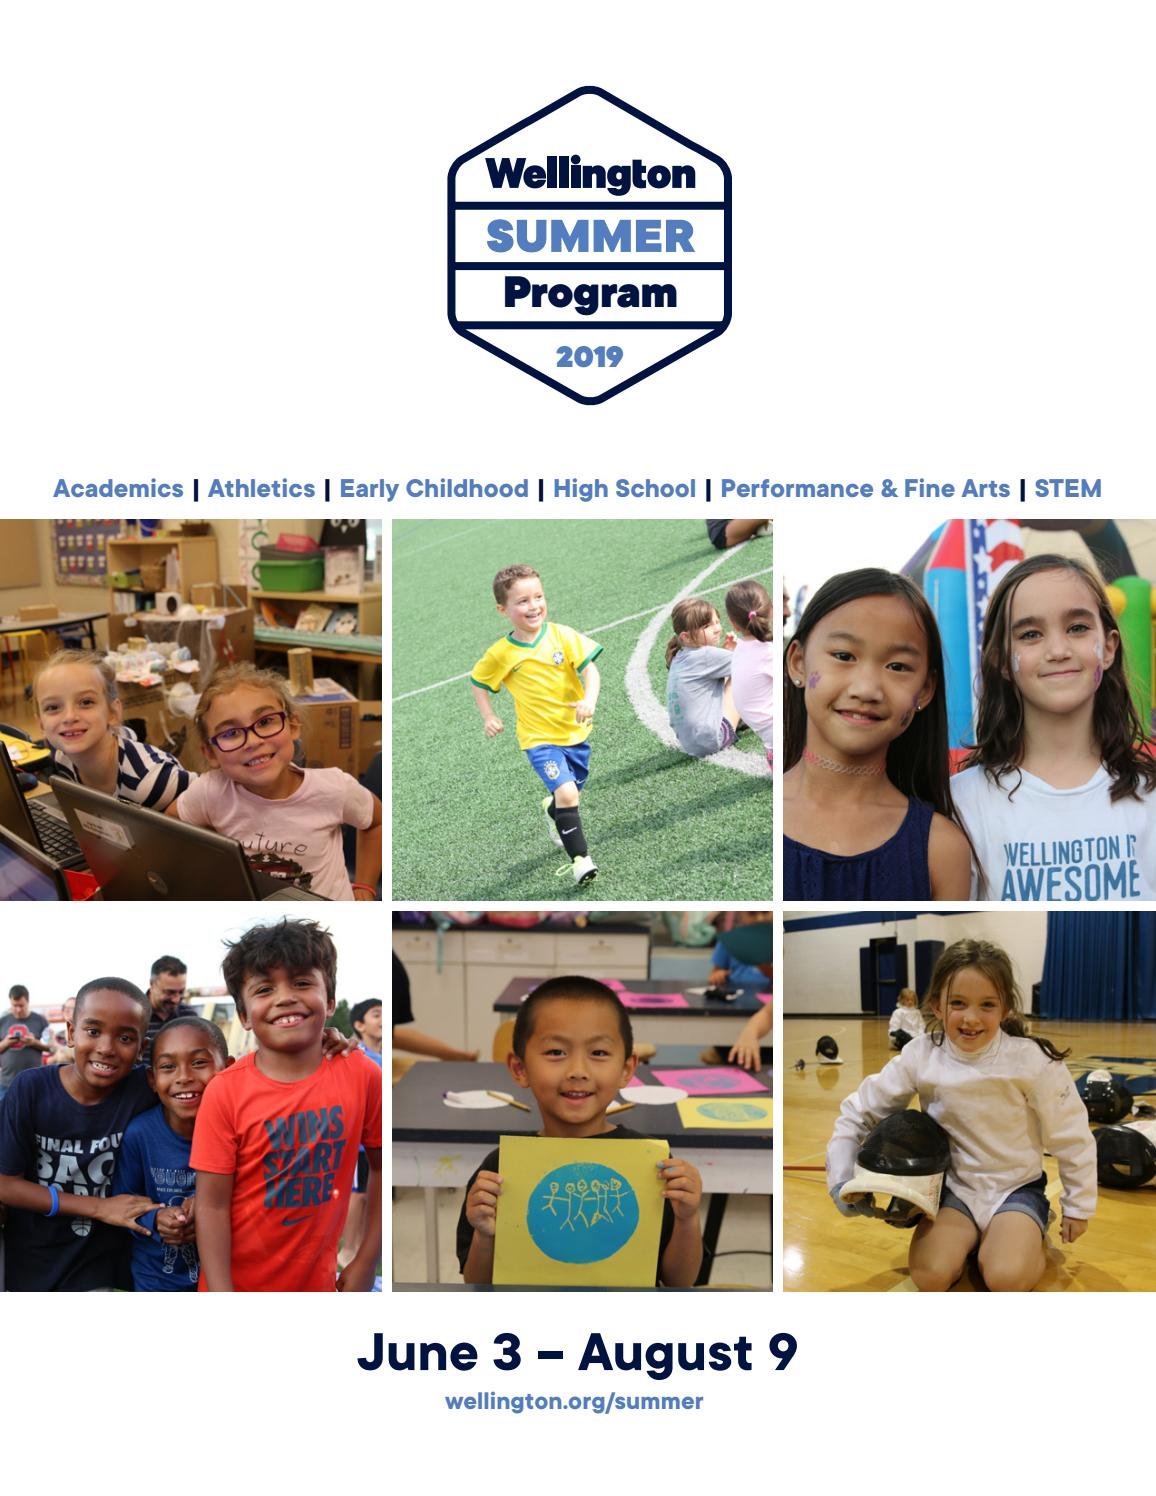 Wellington Summer Program 2019 by Wellington - issuu